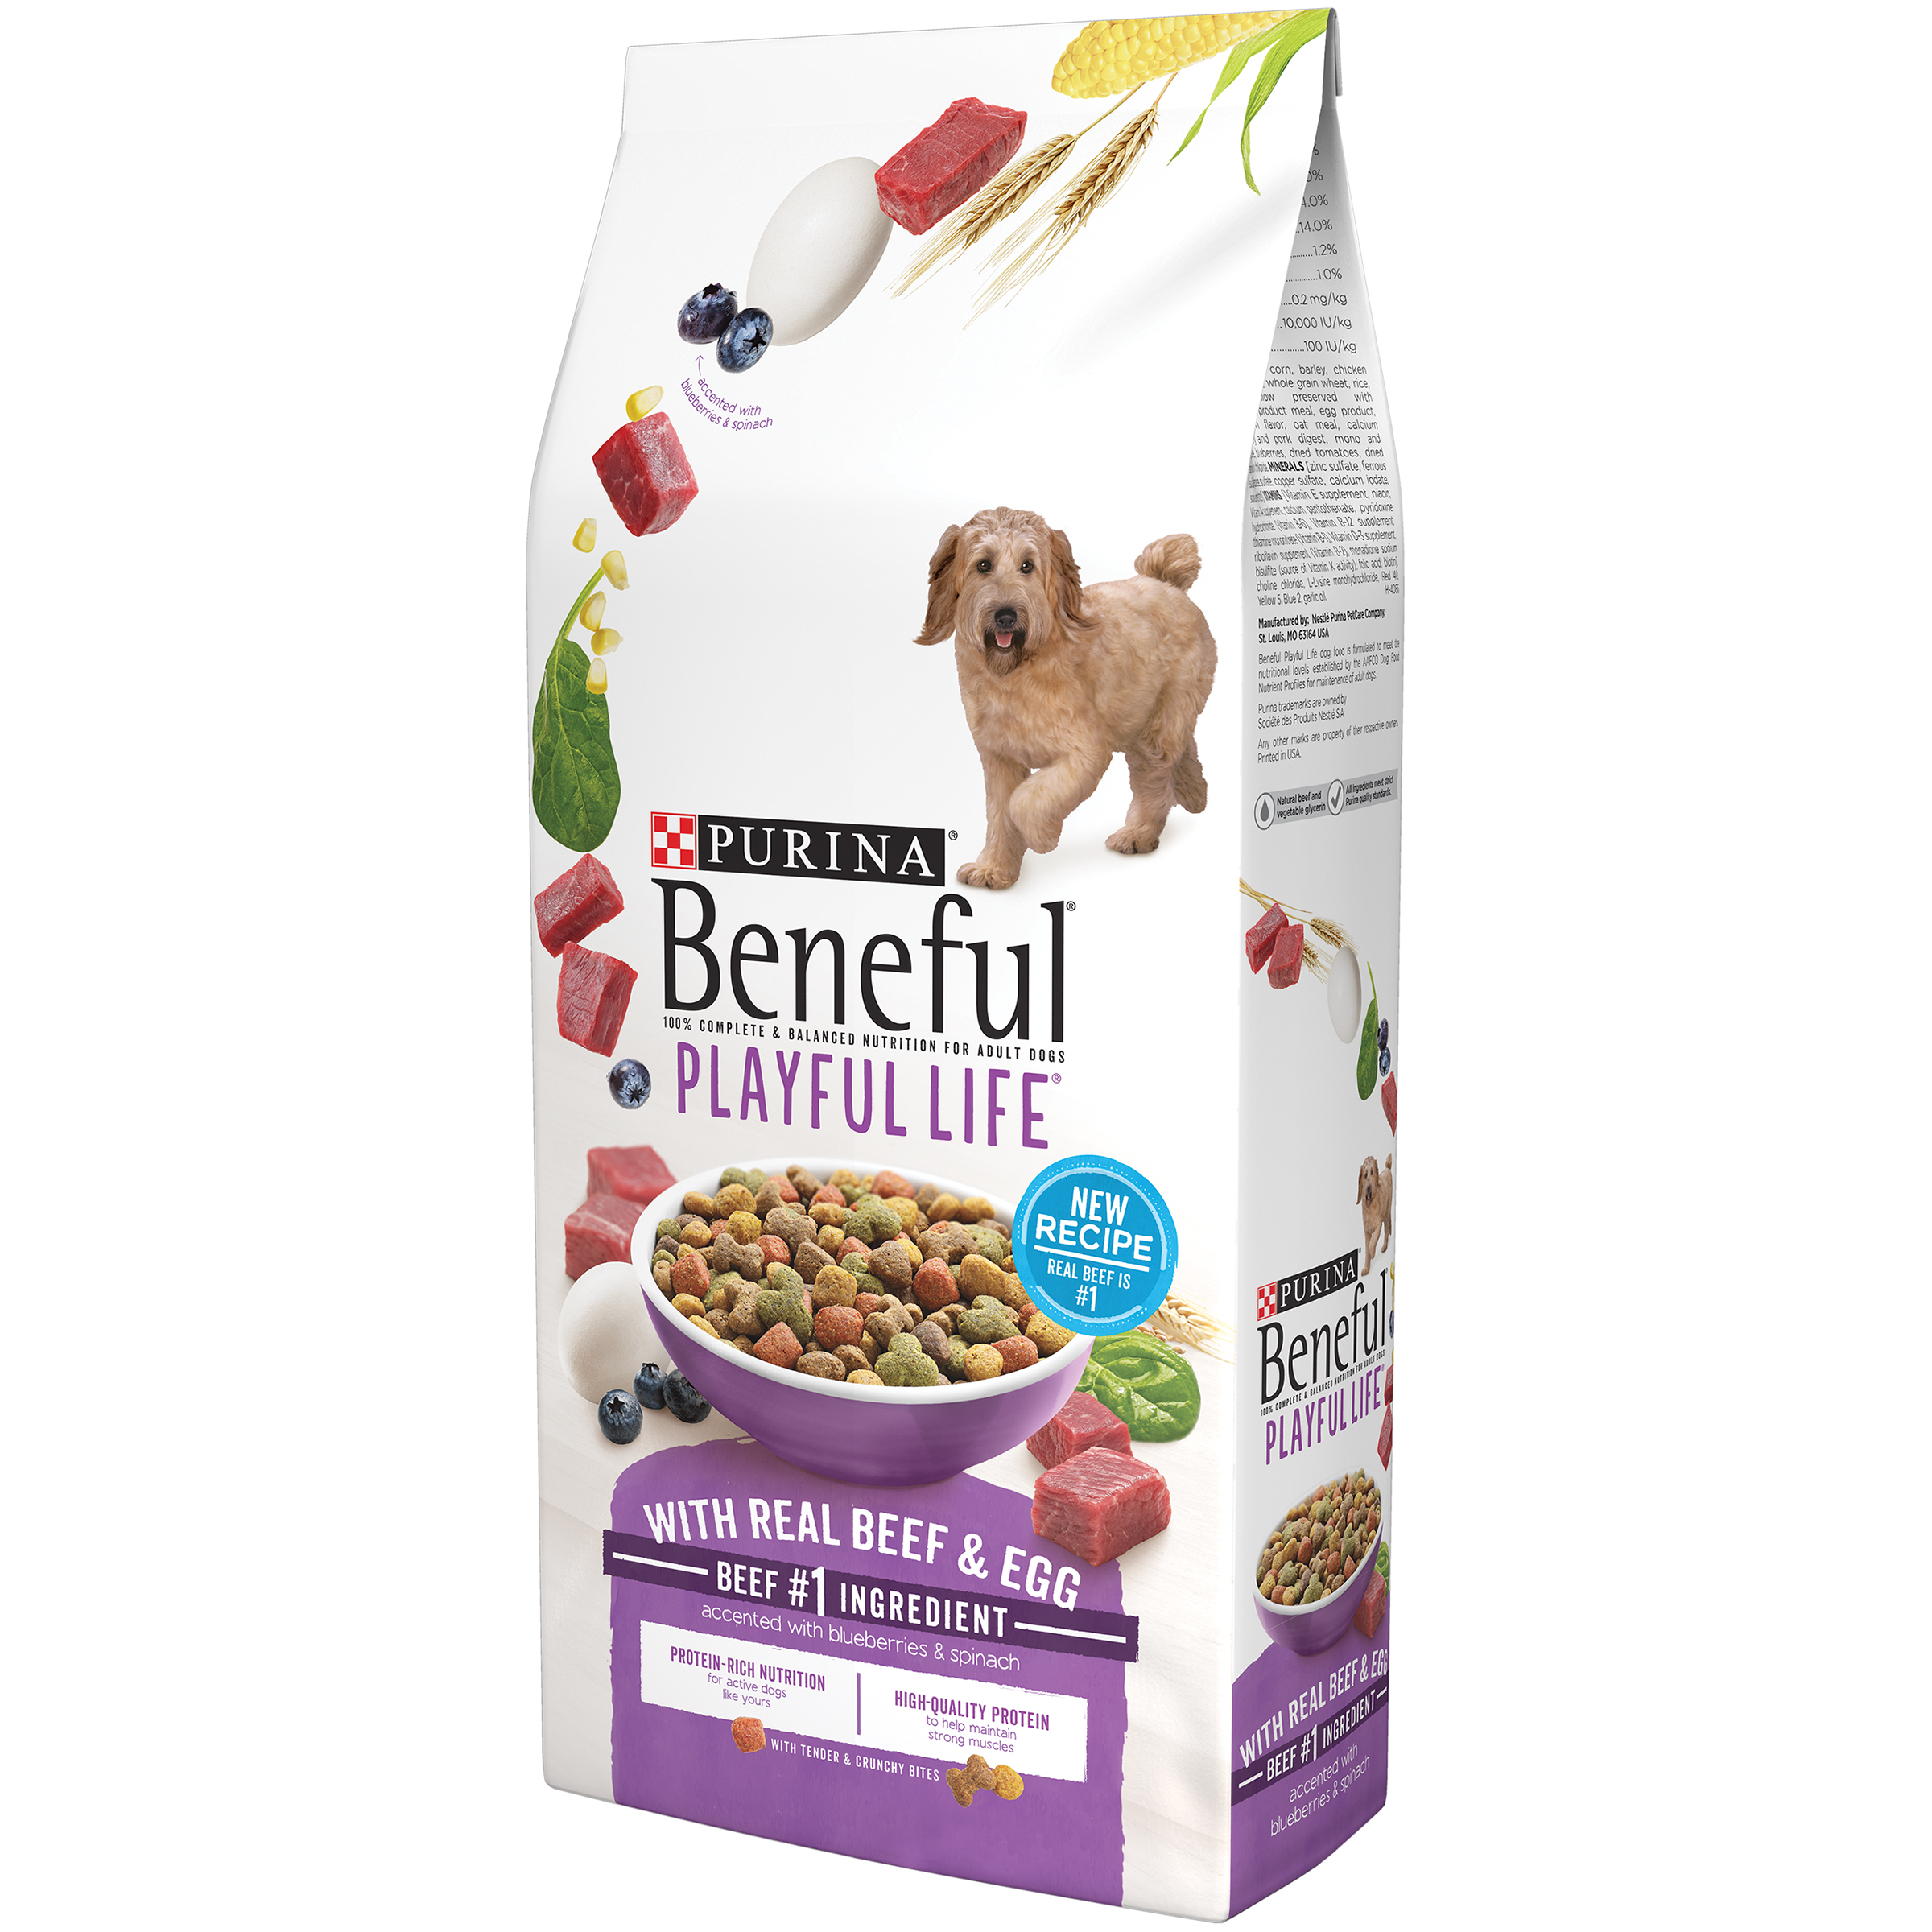 Purina Beneful Playful Life With Real Beef & Egg Dry Dog Food - 15.5 lb. Bag